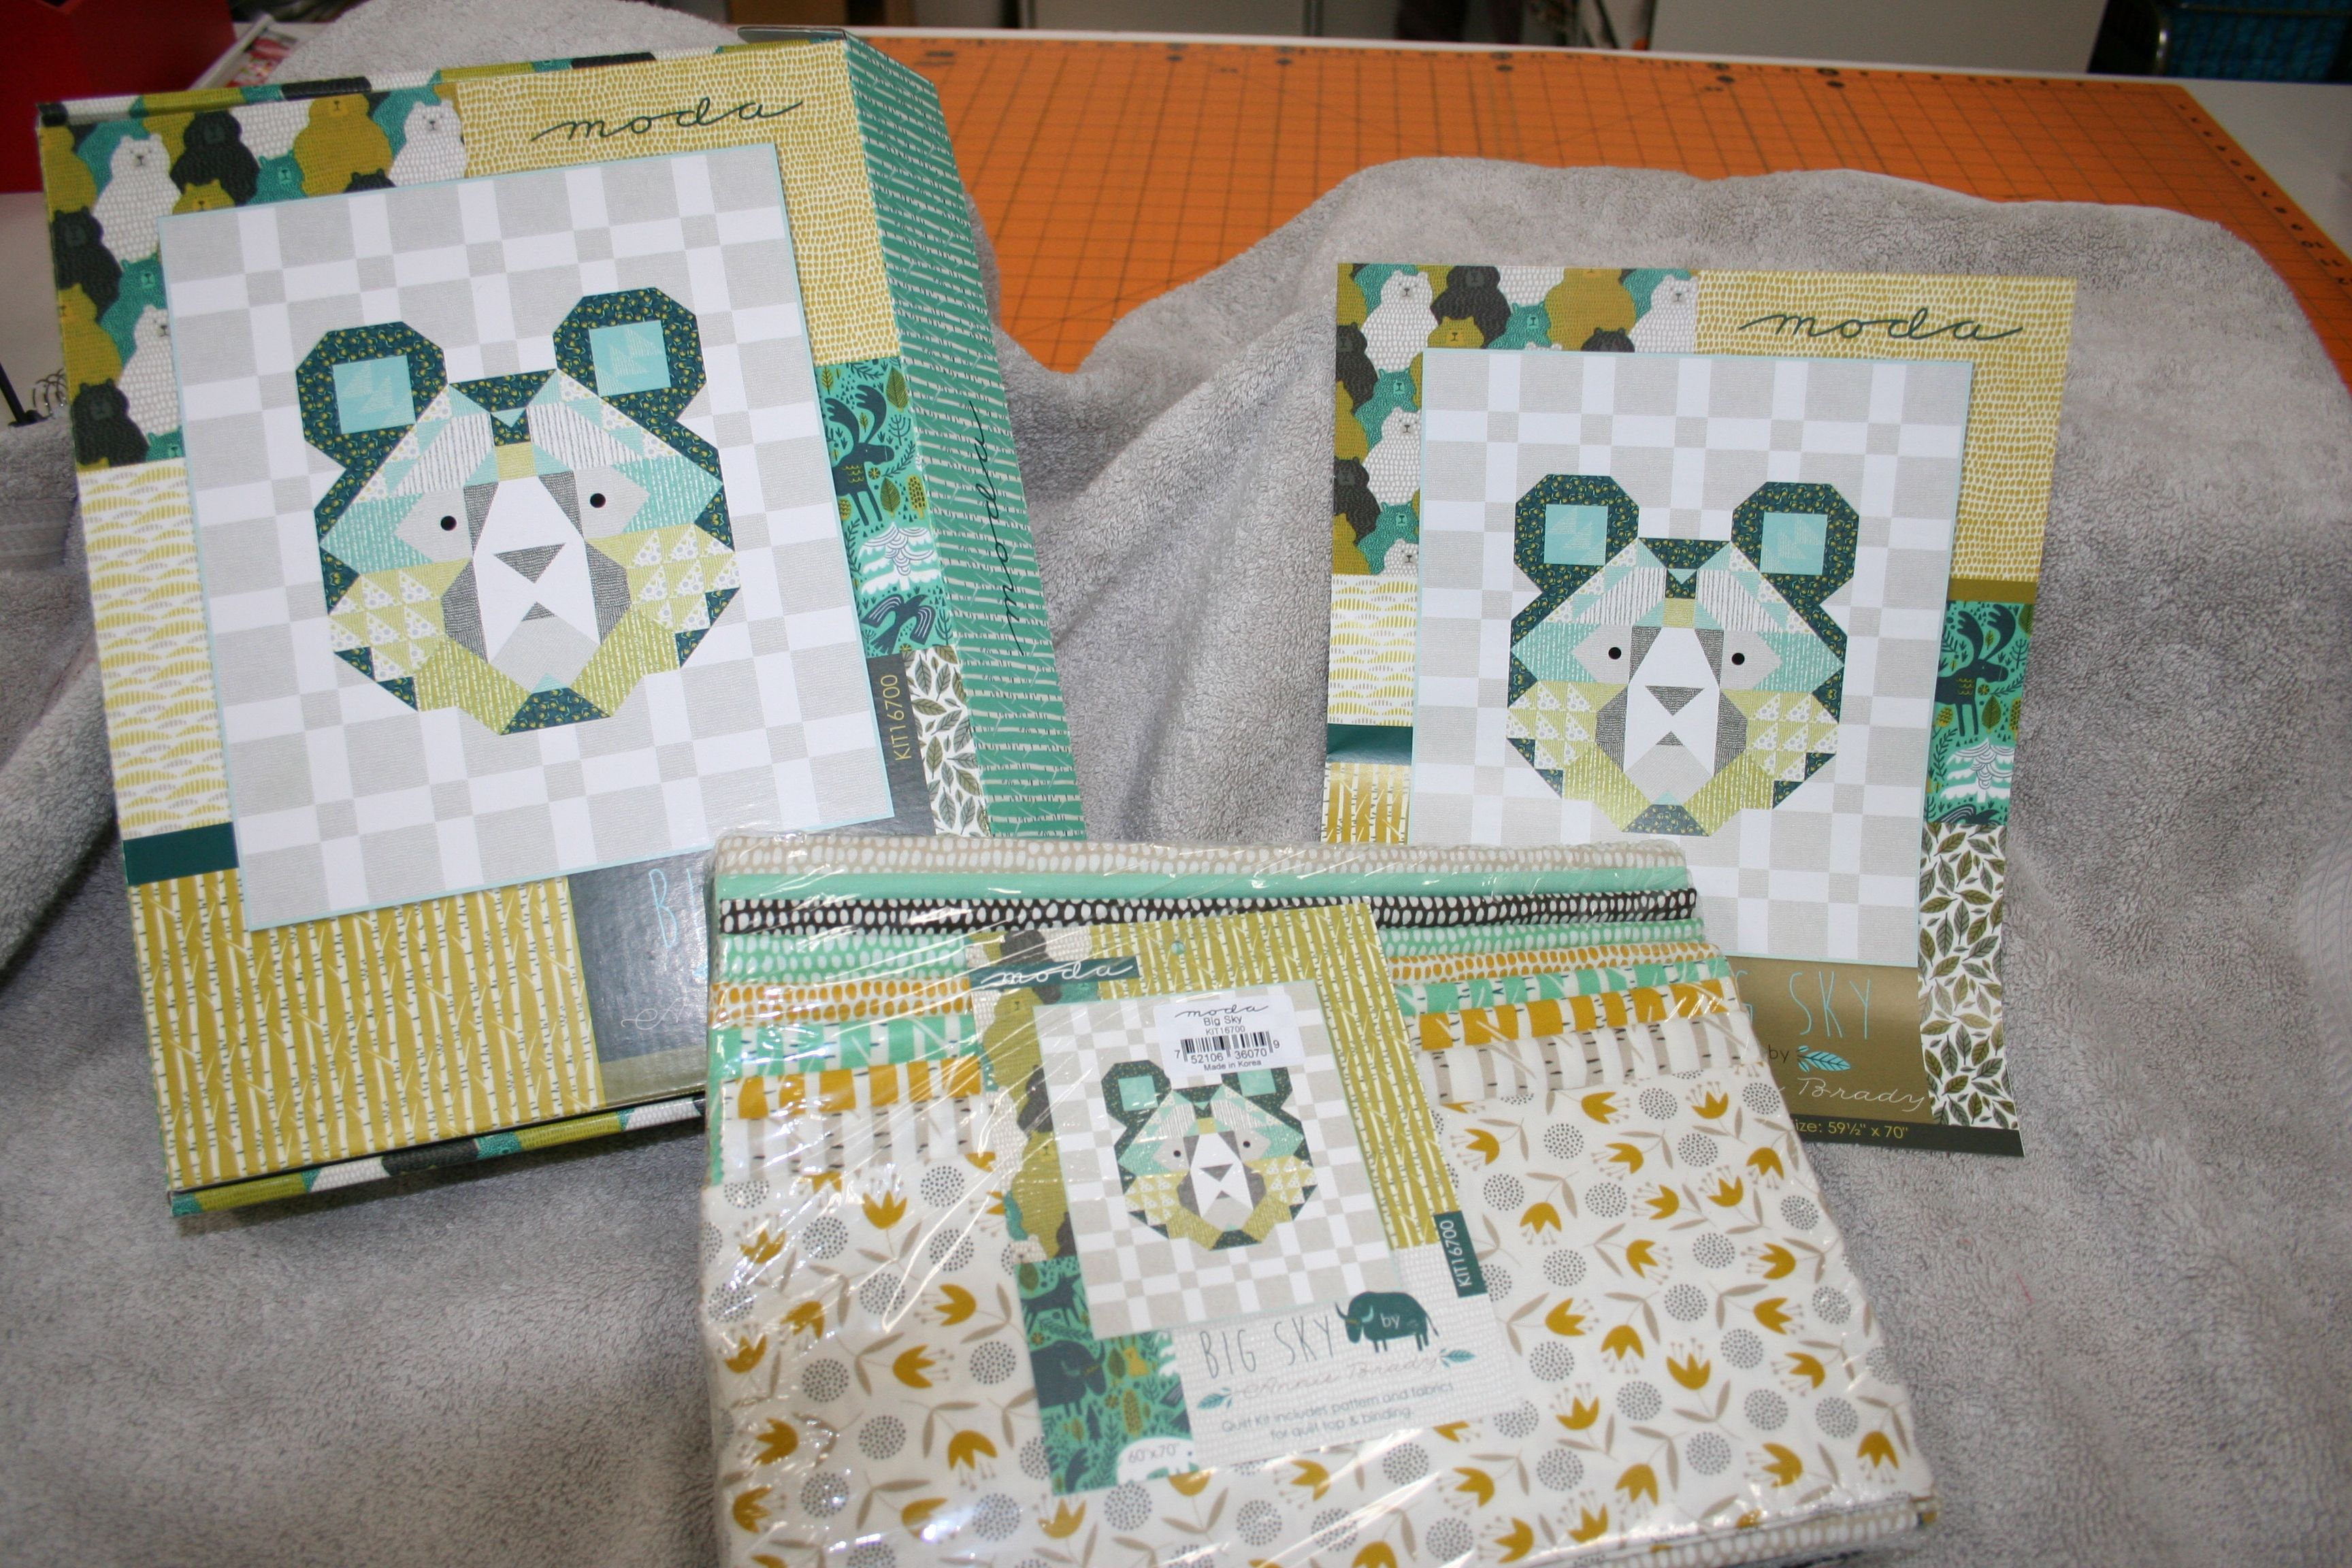 Big Sky Quilt Kit By Moda 59 1 2 X 70 Sky Quilt Quilt Kit Quilts